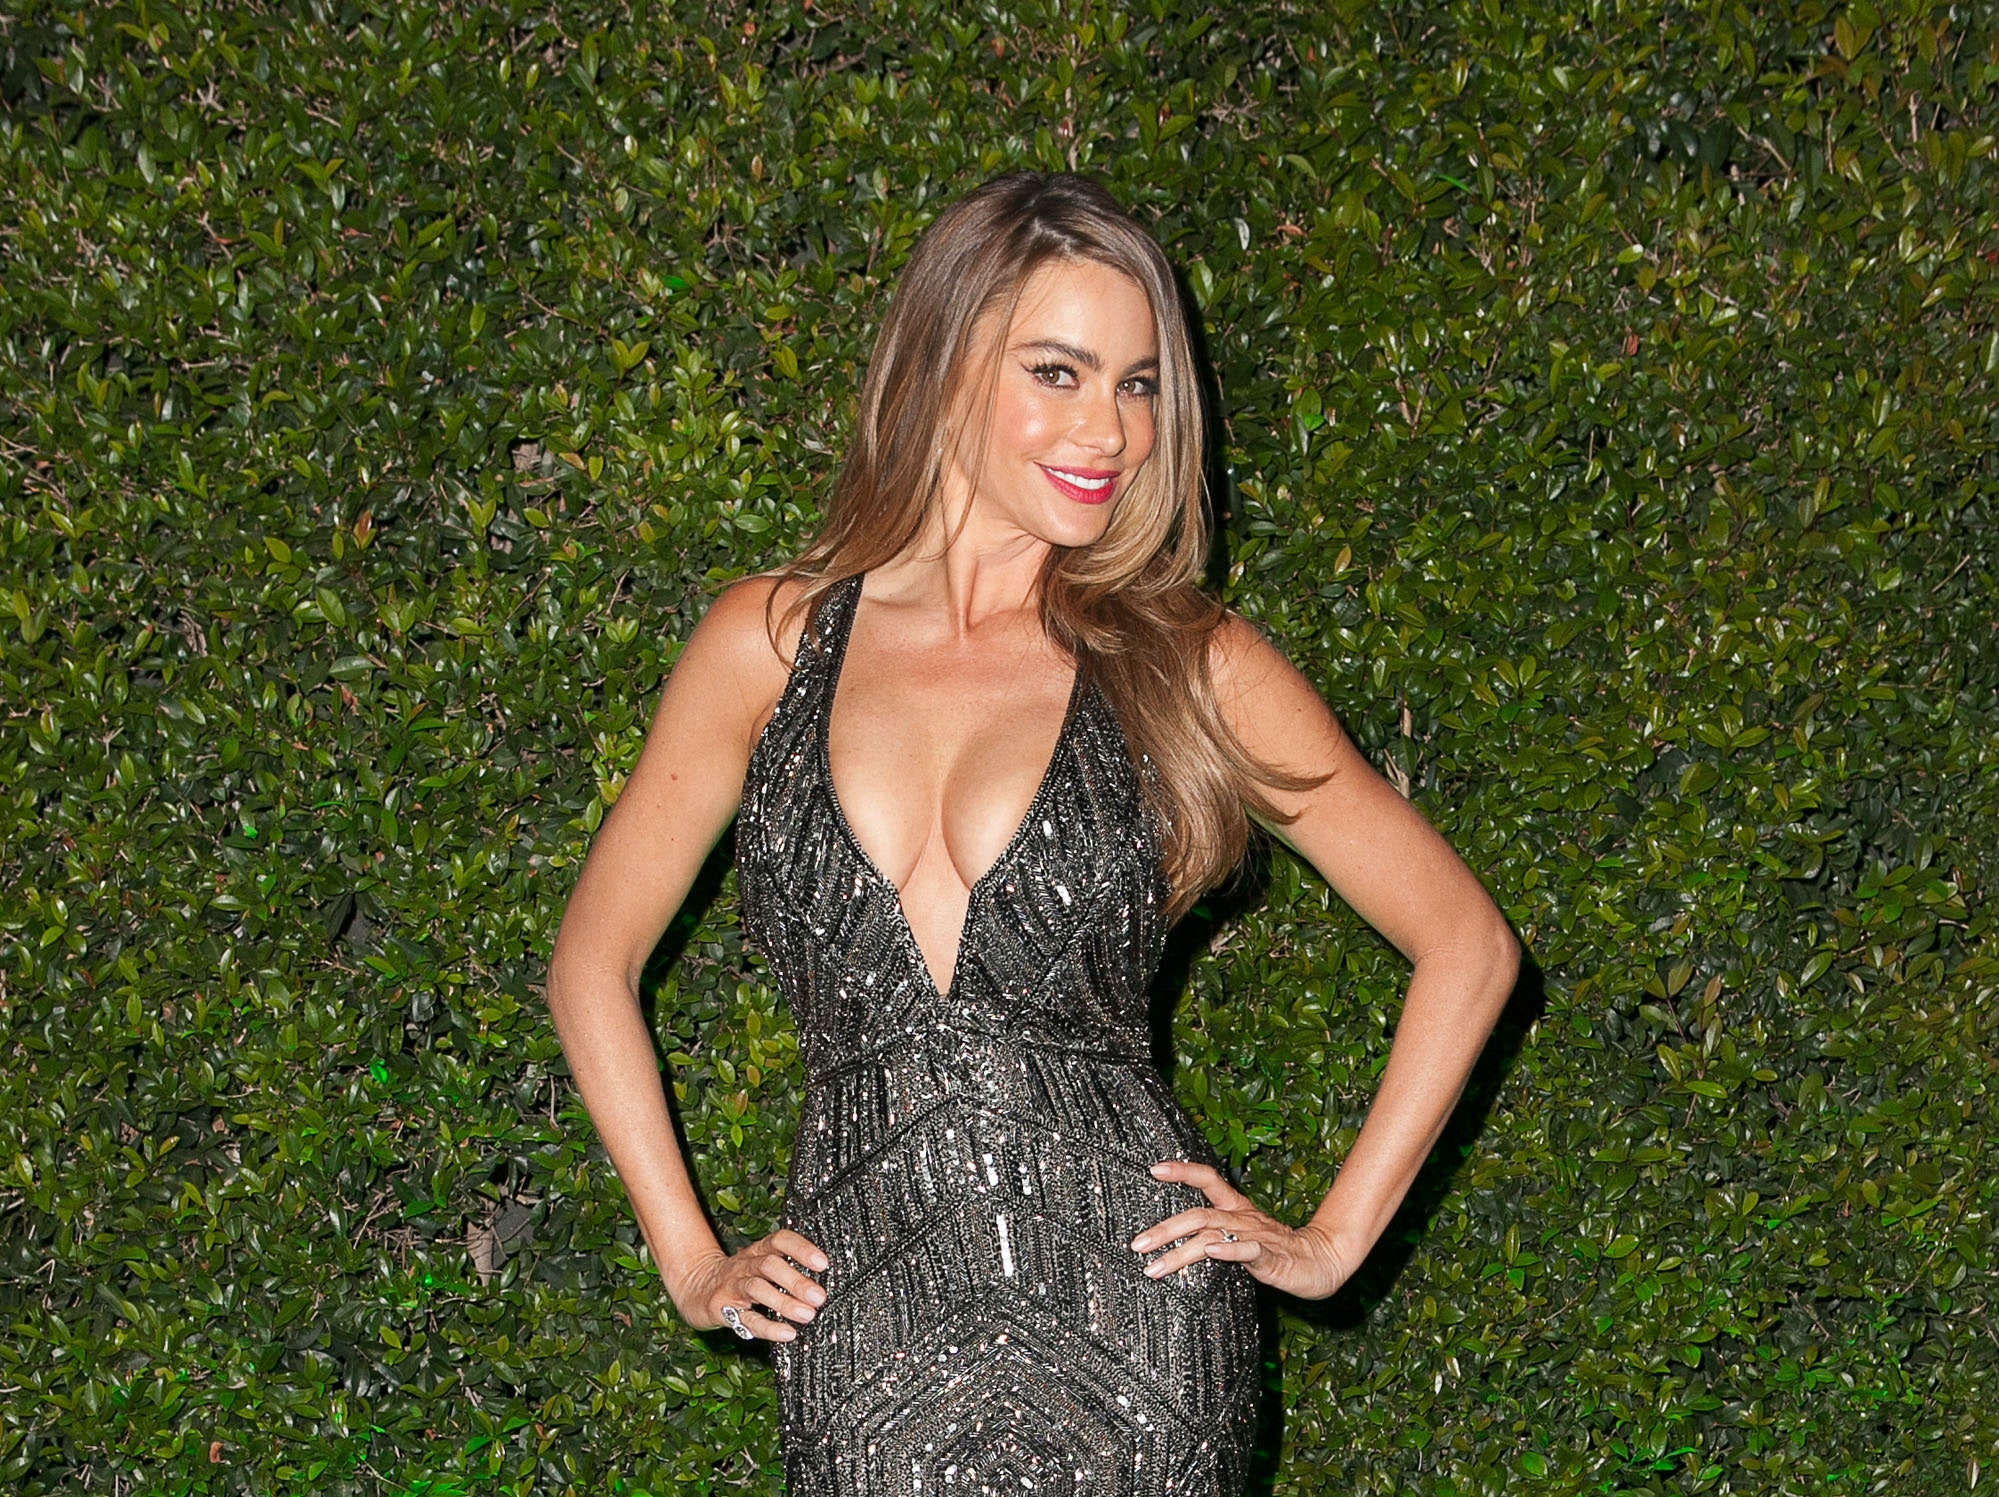 BEVERLY HILLS, CA - JANUARY 12:  Sofia Vergara attends Fox And FX's 2014 Golden Globe Awards Party on January 12, 2014 in Beverly Hills, California.  (Photo by Gabriel Olsen/Getty Images)